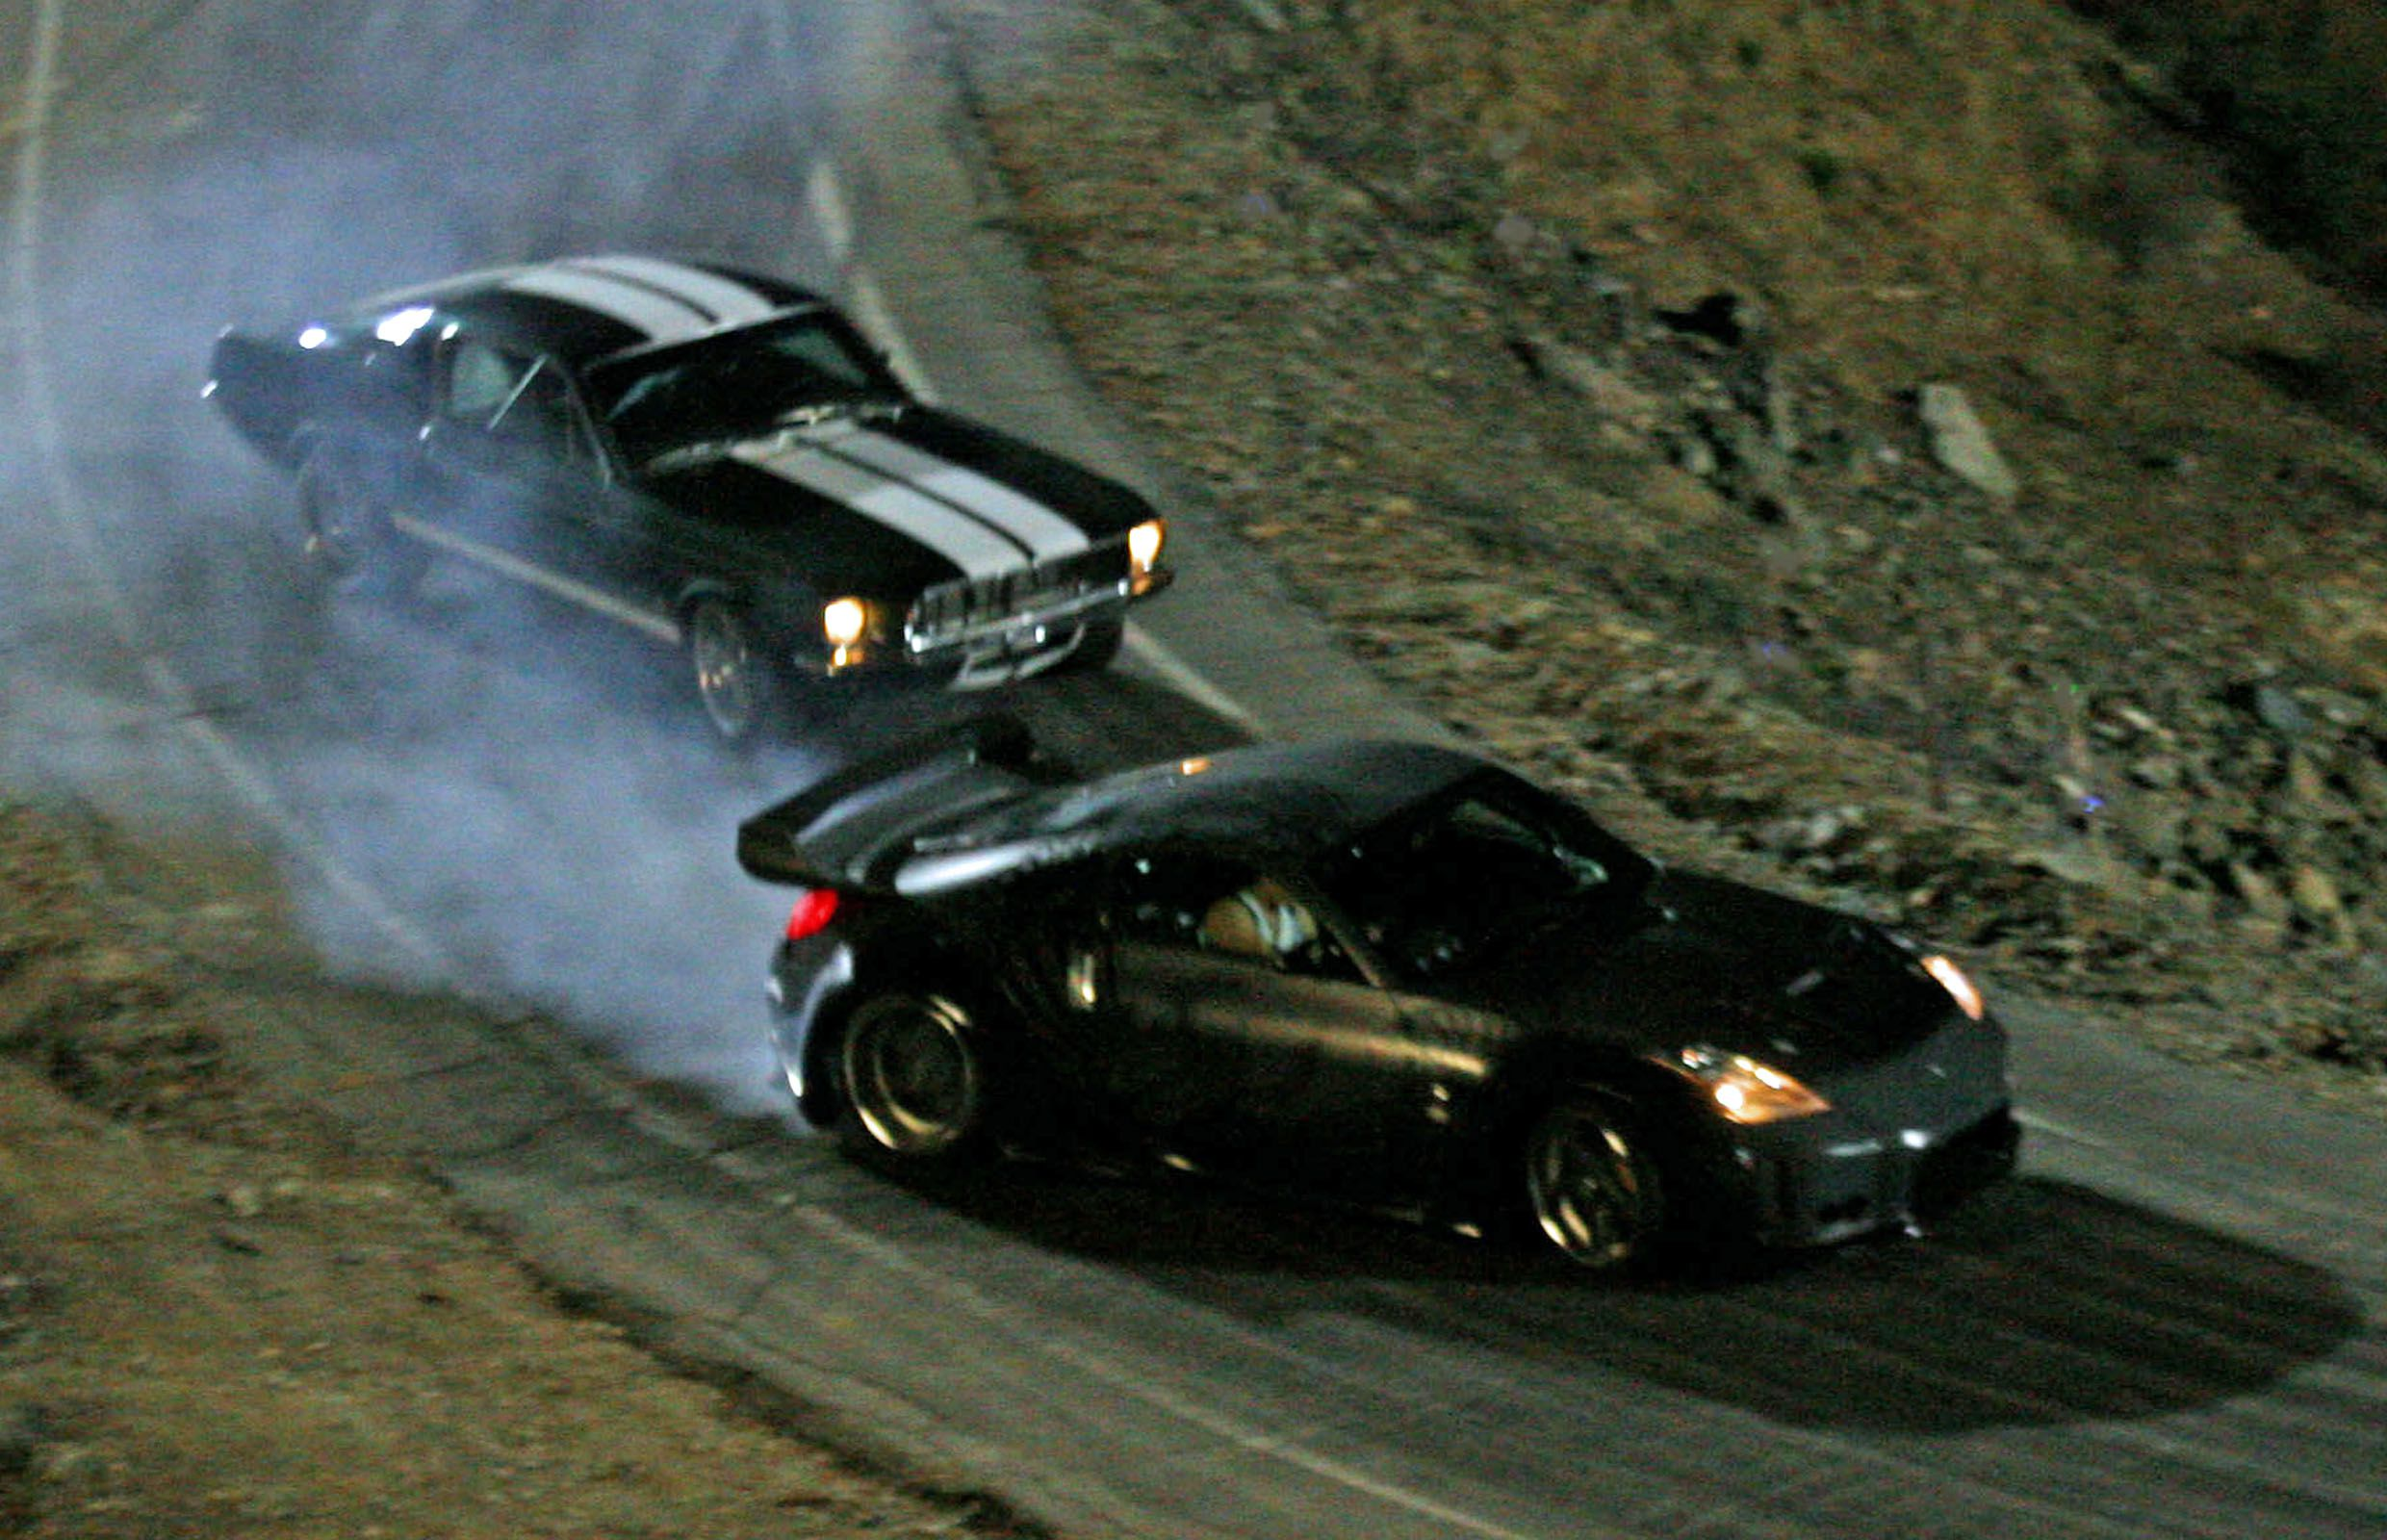 10 Best Street Racing Movies That Get Underground Car Culture Right Driving